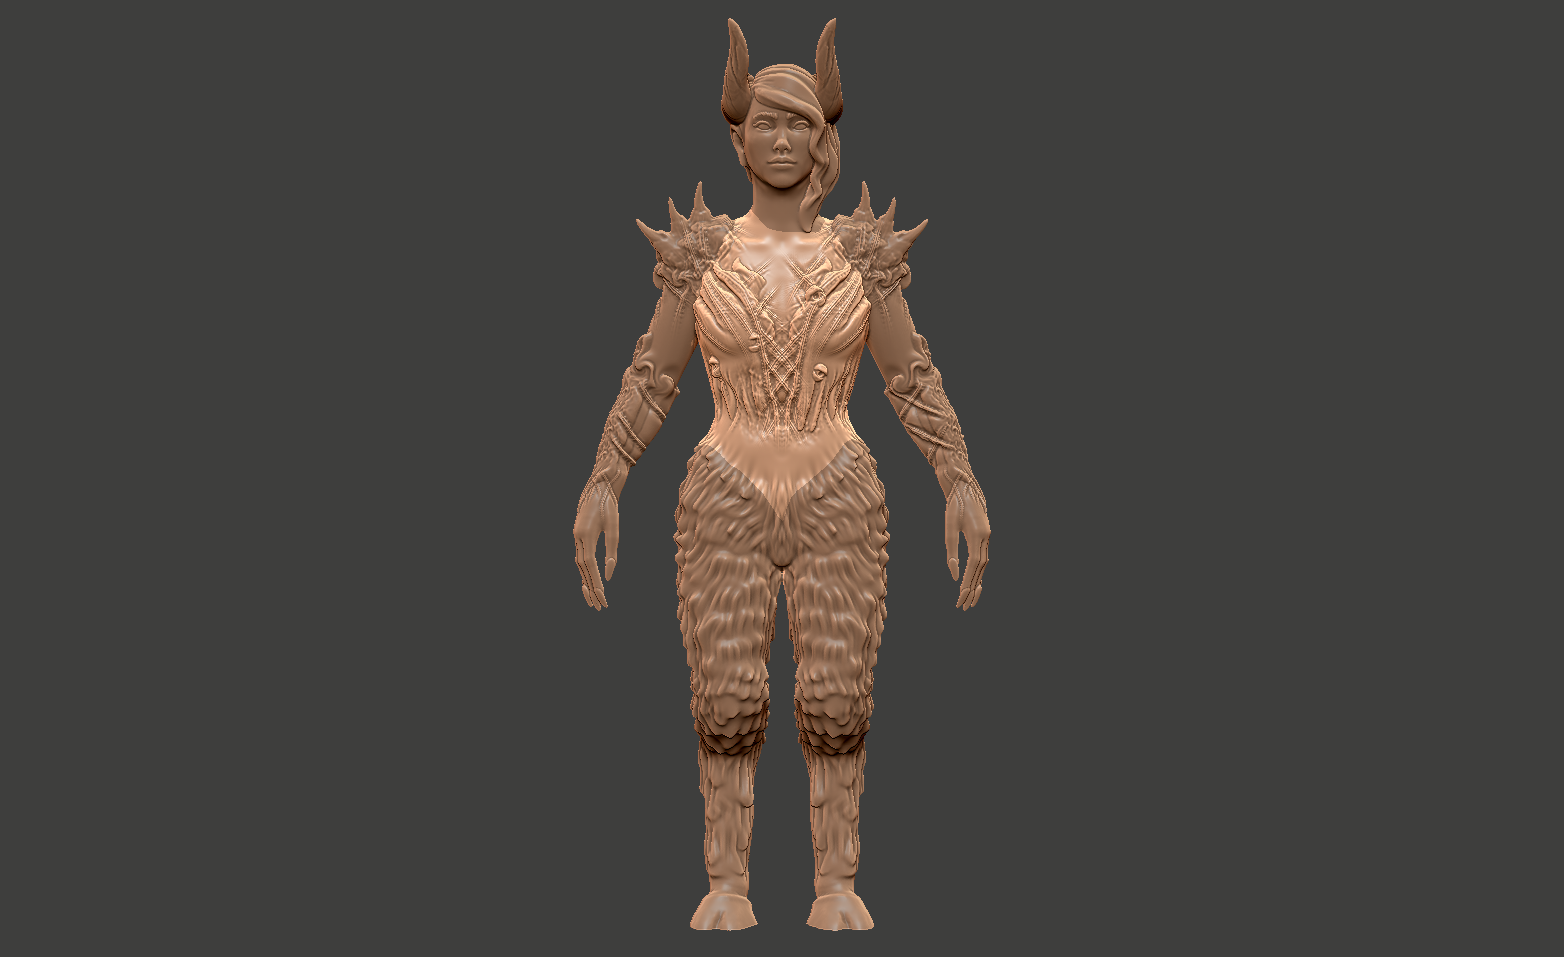 Splitting the model - This model is actually 6 different pieces. I'll show you what I mean, and how I did it. Currently the torso is selected, that's why it is a lighter color.